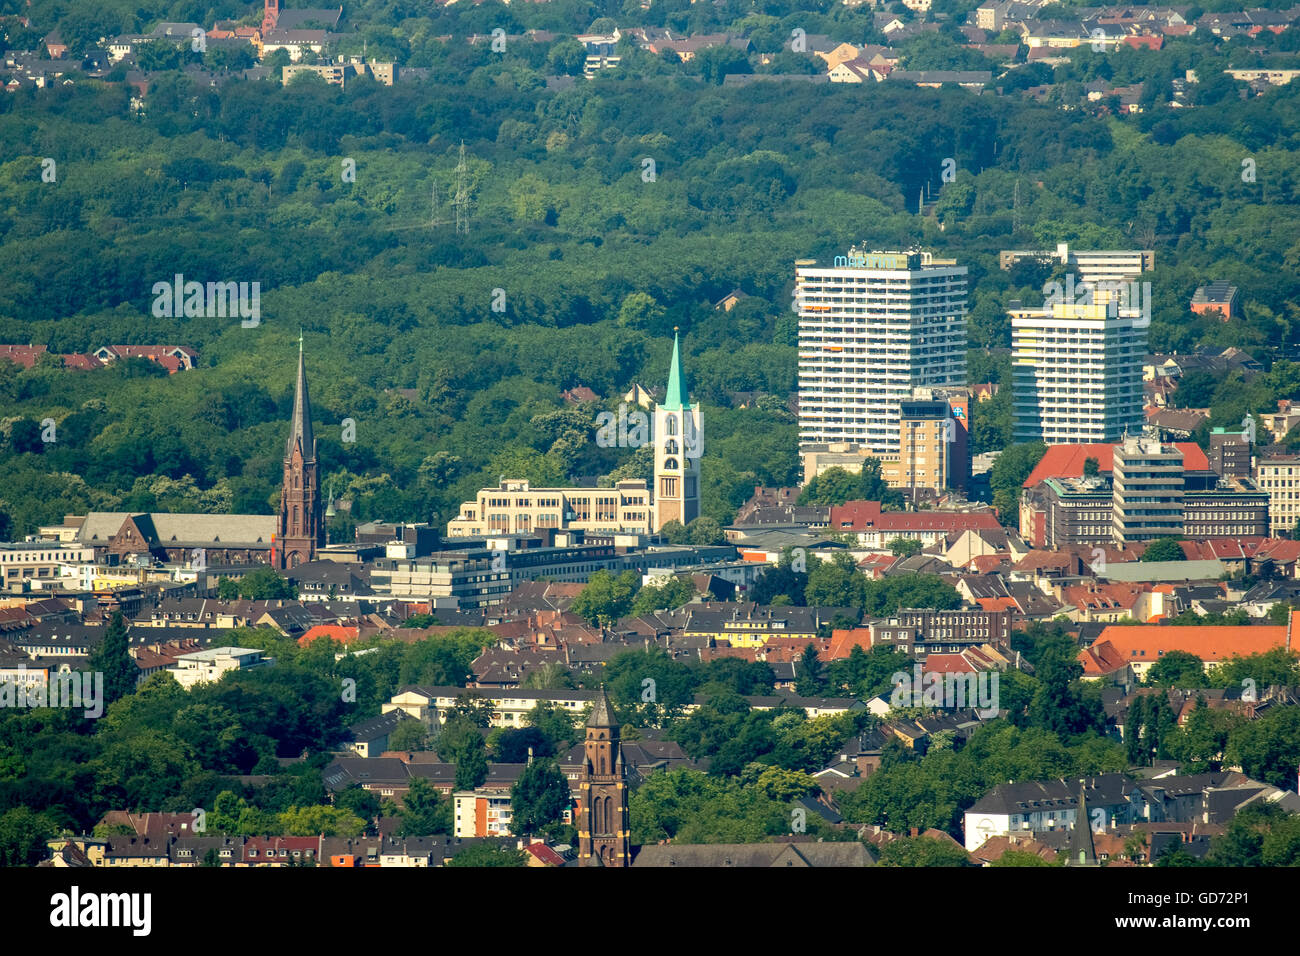 Aerial view, telephoto view of downtown Gelsenkirchen Maritim Hotel, view from Bismarck downtown, town garden residence, - Stock Image